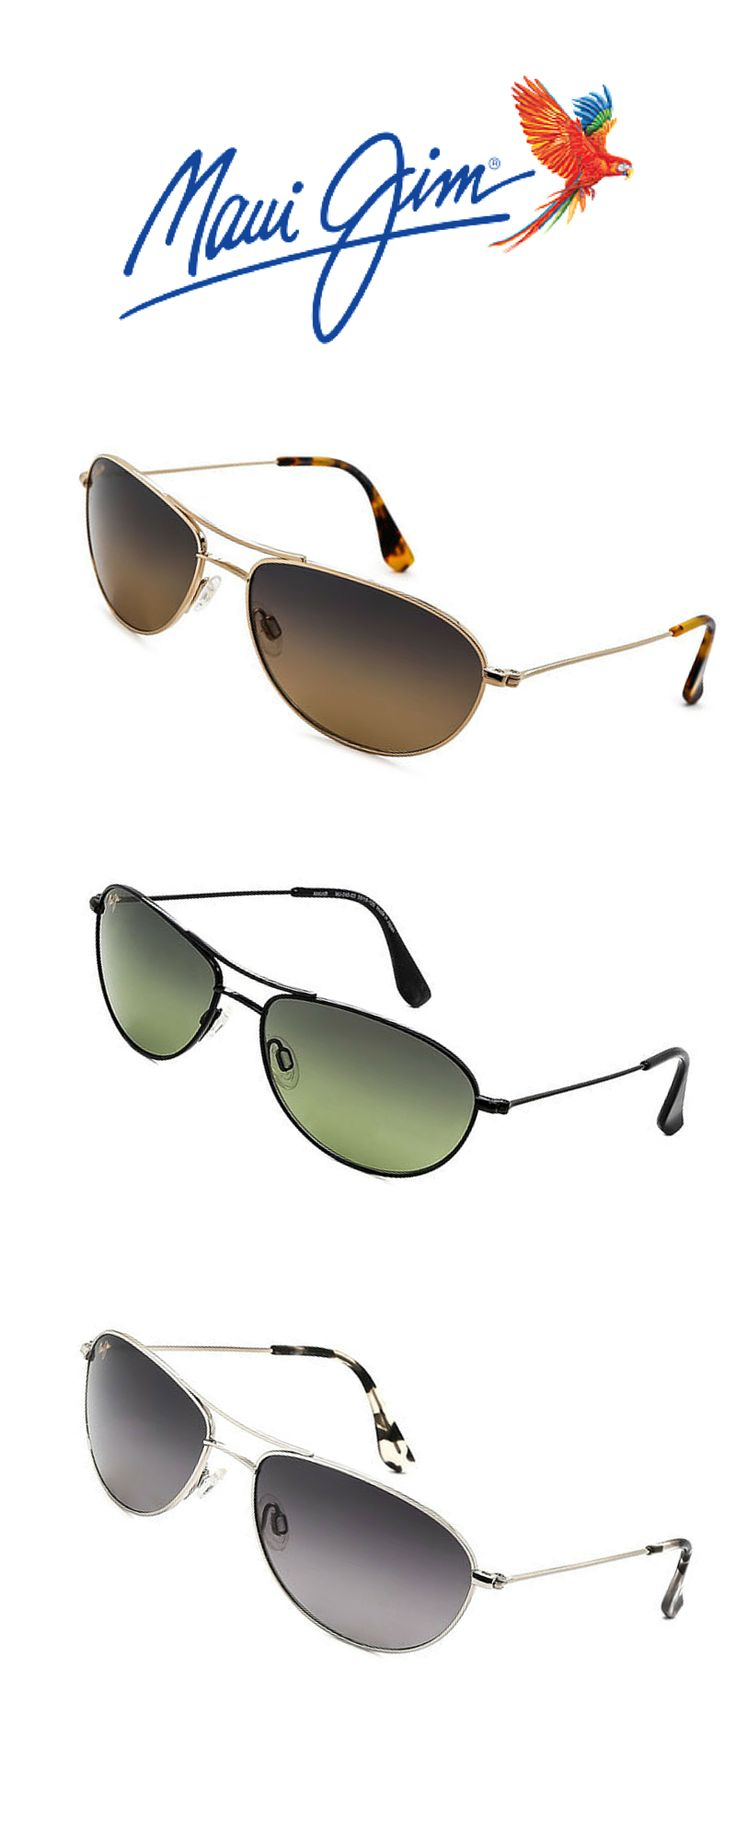 Maui Jim Baby Beach Polarized #sunglasses. Style for your summer. http://www.smartbuyglasses.com/designer-sunglasses/Maui-Jim/Maui-Jim-Baby-Beach-Polarized-GS245-17-108621.html